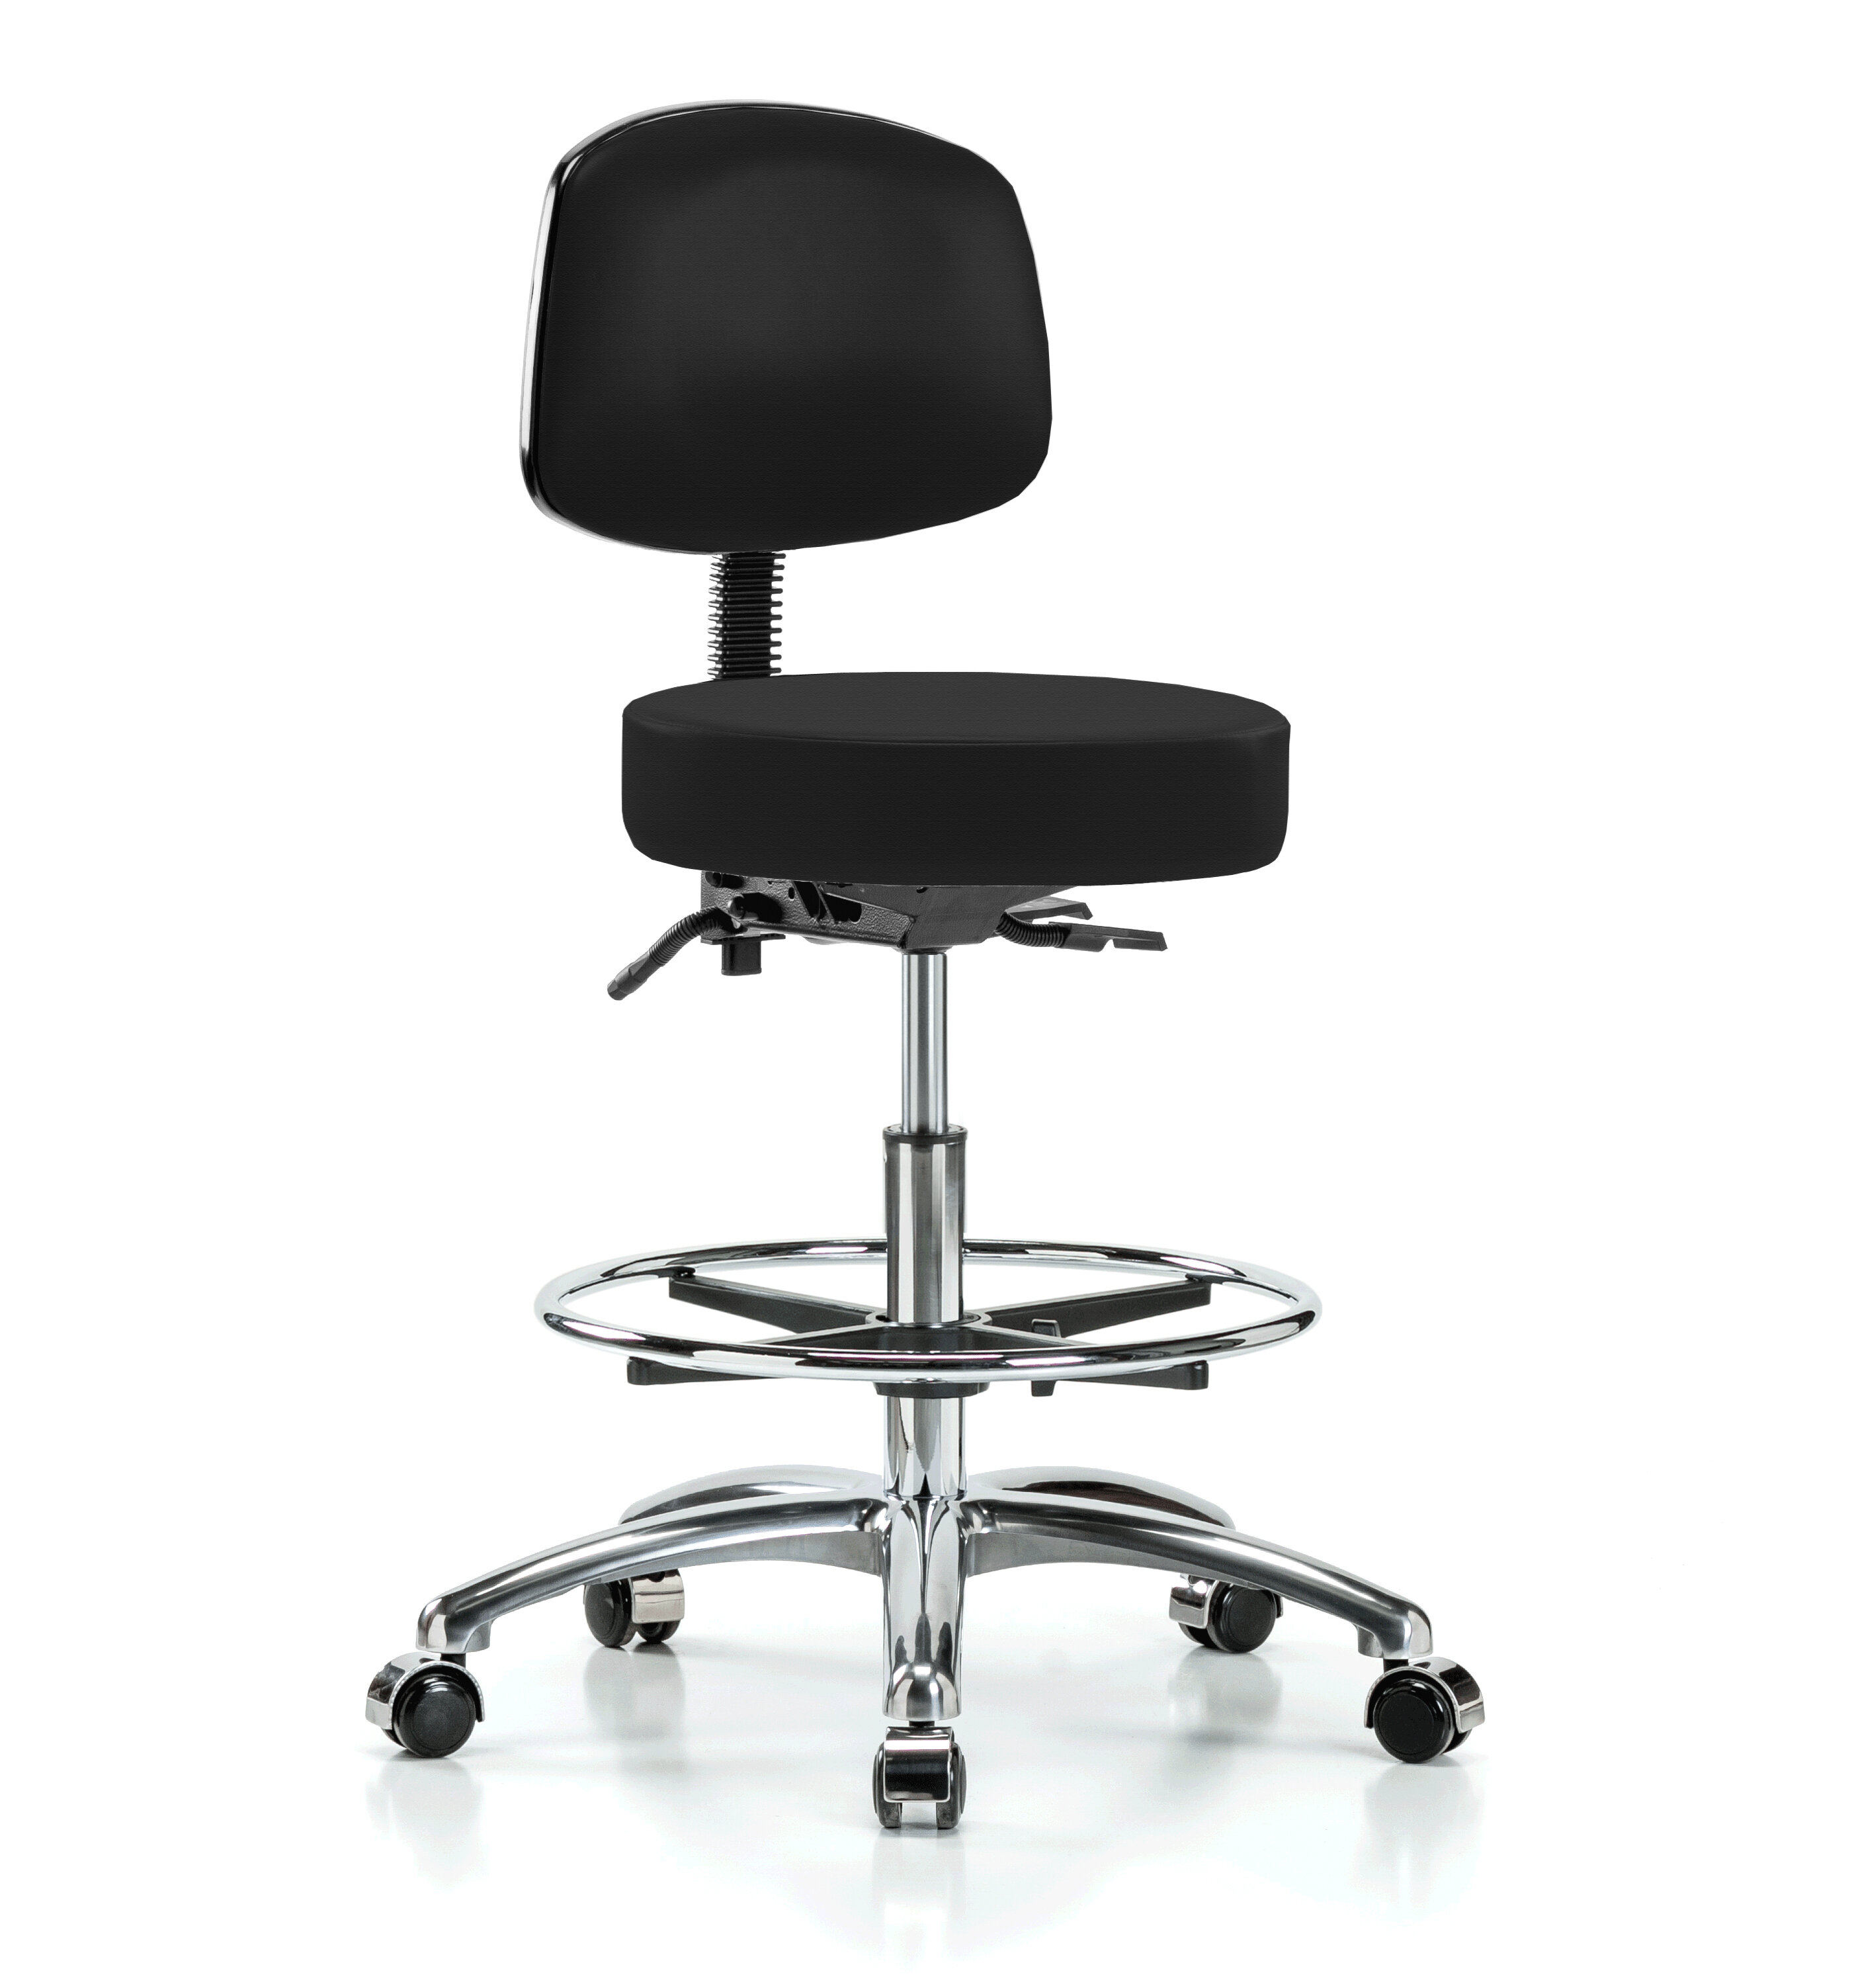 Perch Chairs Amp Stools Height Adjustable Doctor Stool With